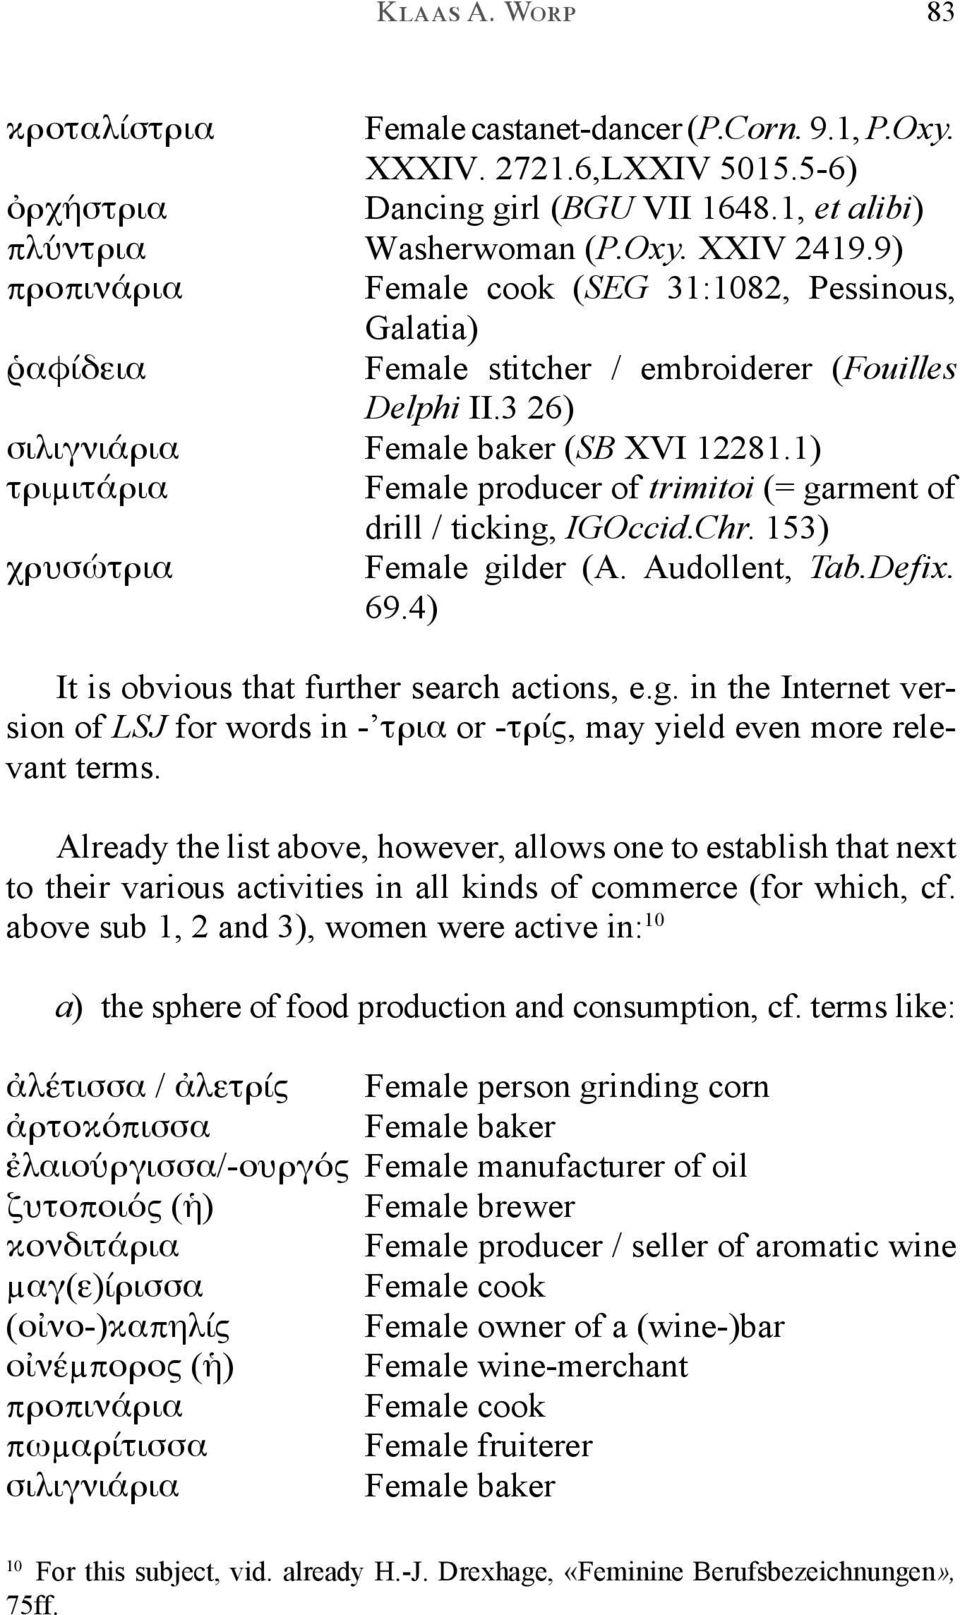 1) τριμιτάρια Female producer of trimitoi (= garment of drill / ticking, IGOccid.Chr. 153) χρυσώτρια Female gilder (A. Audollent, Tab.Defix. 69.4) It is obvious that further search actions, e.g. in the Internet version of LSJ for words in - τρια or -τρίς, may yield even more relevant terms.